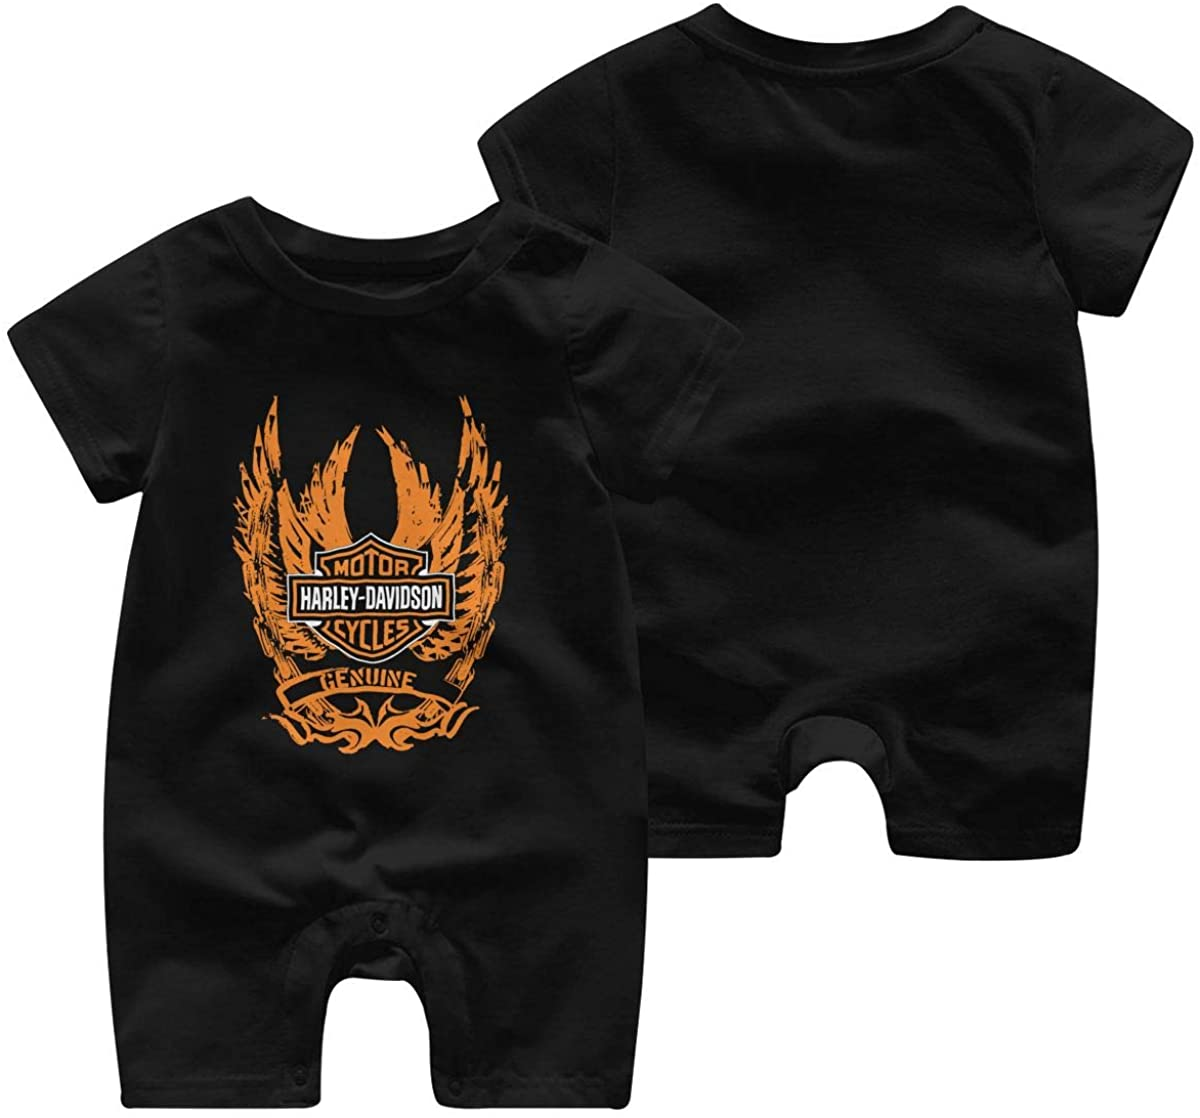 Harley Davidson One Piece Outfits Baby Solid Color Rompers with Button Kids Short Sleeve Playsuit Jumpsuits Cotton Clothing 2t Black